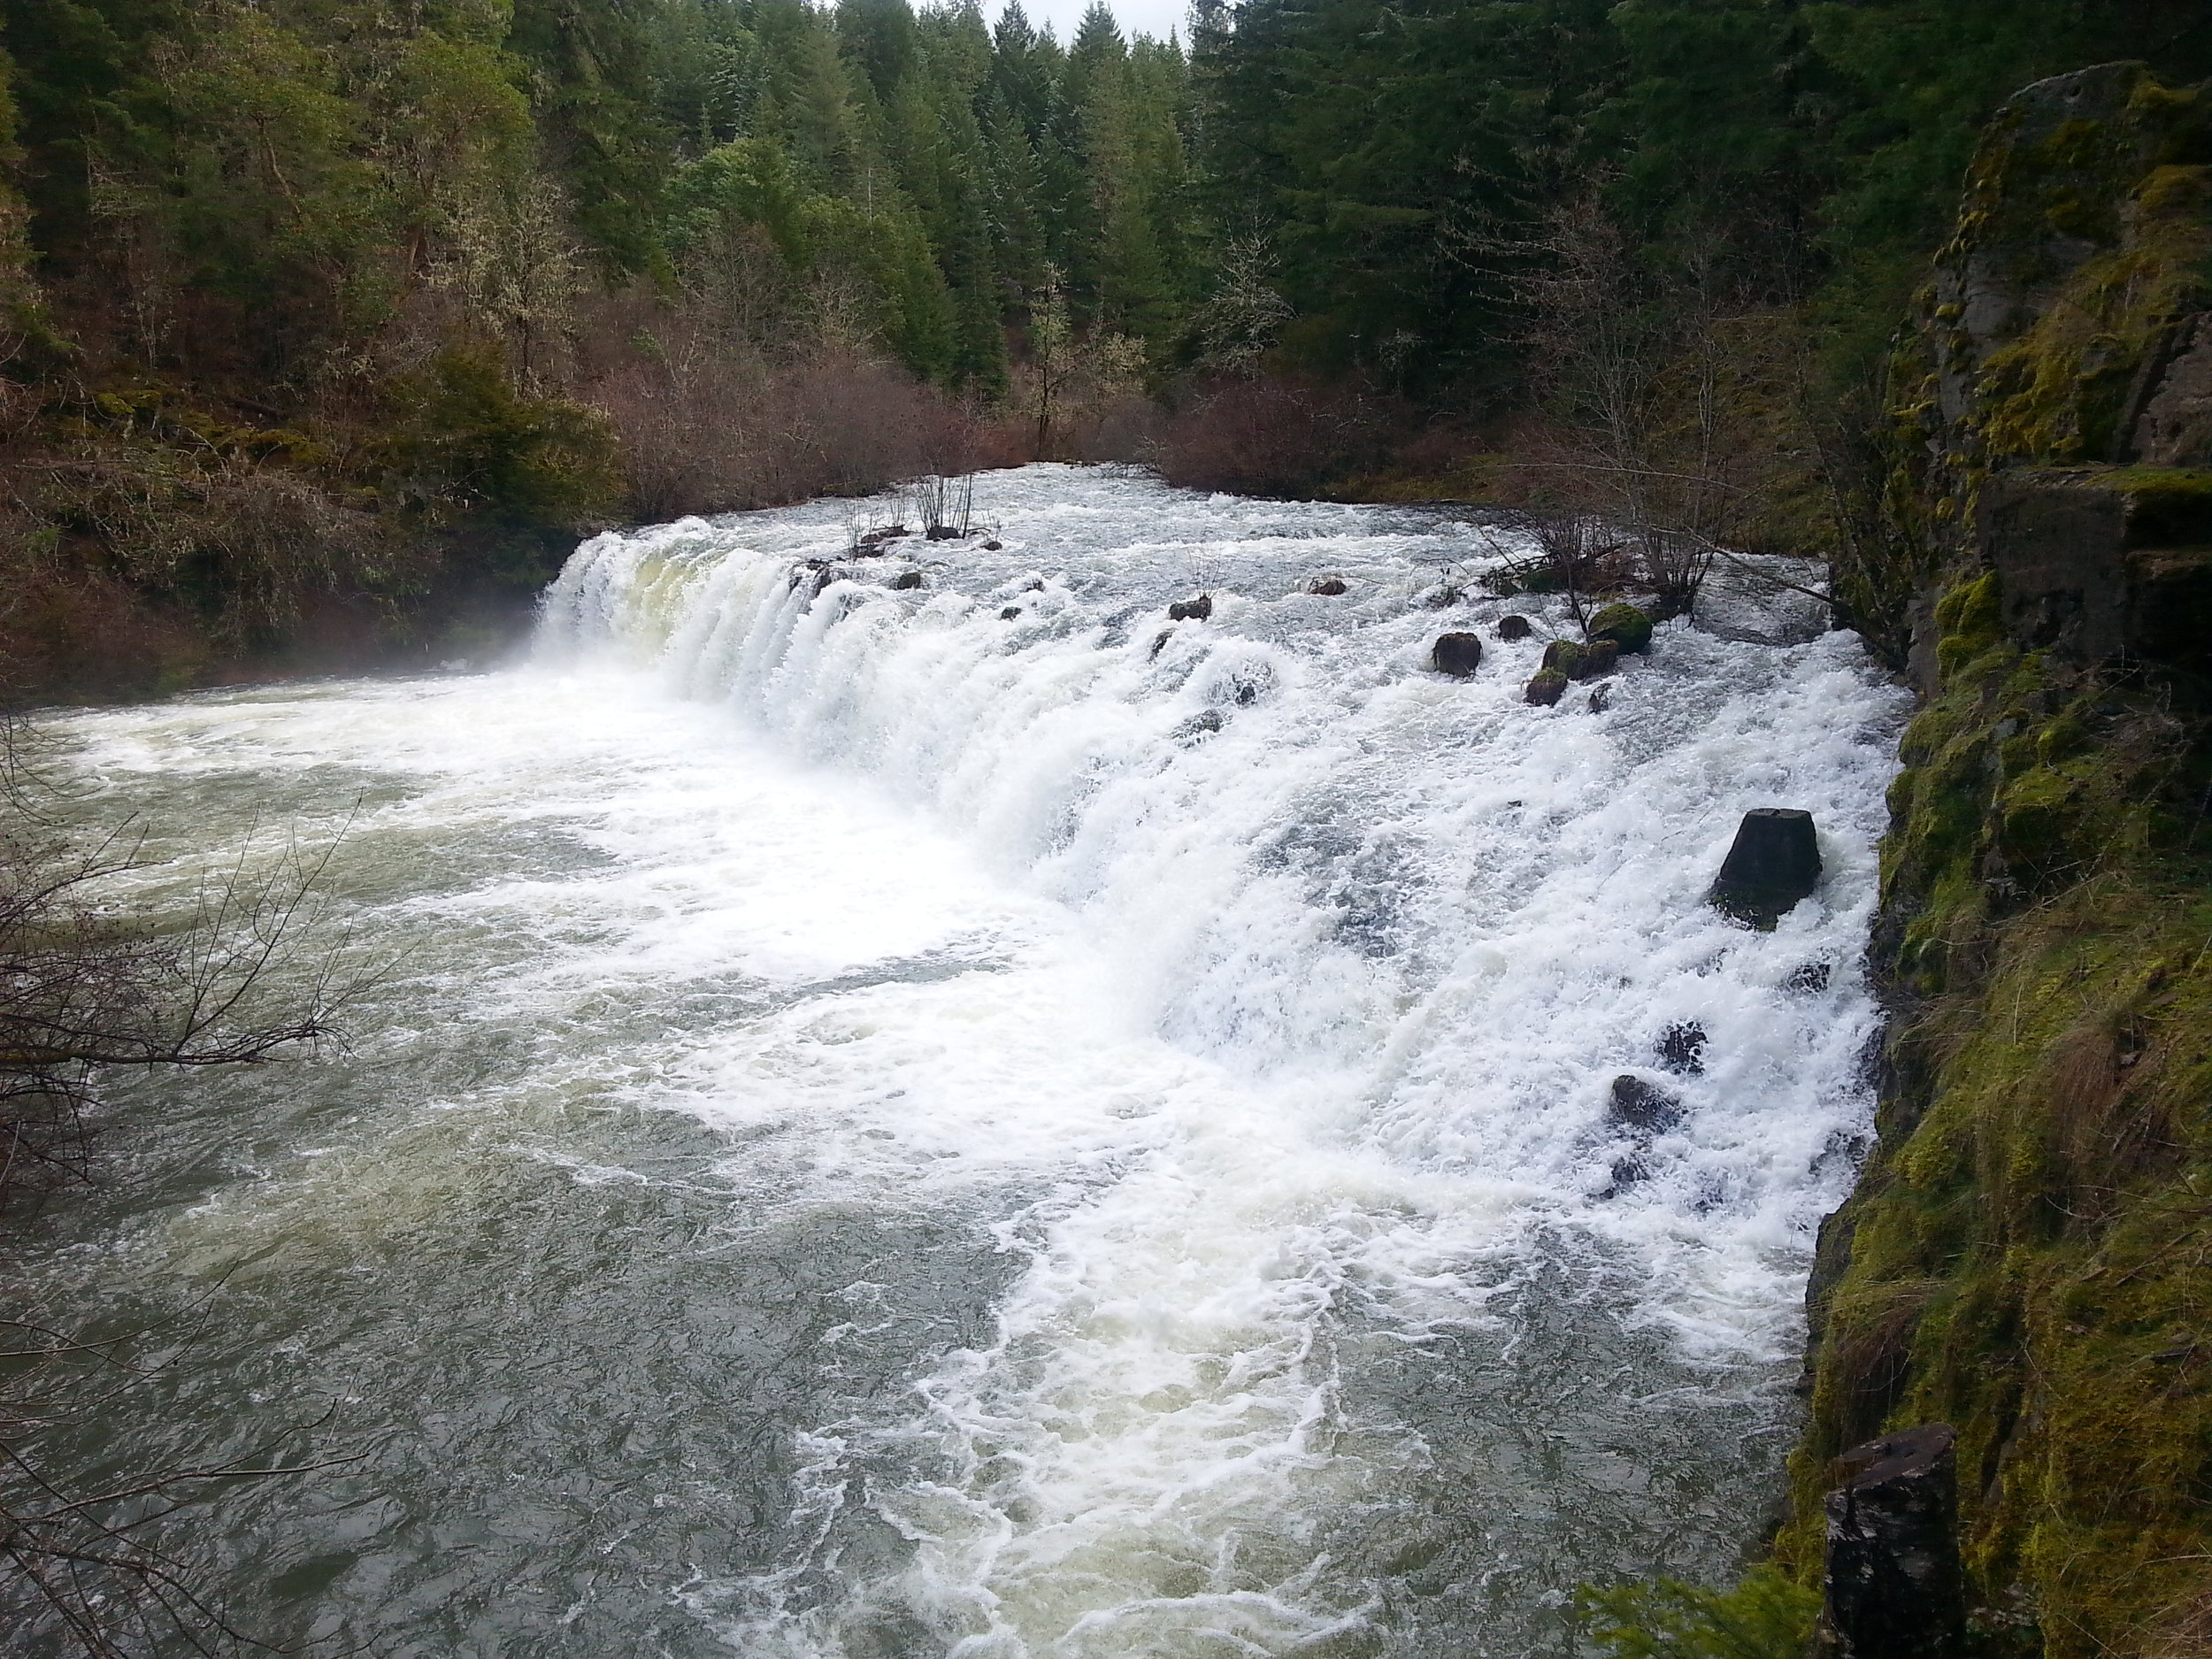 BUTTE FALLS - Waterfalls - What to do in Southern Oregon - Things to do - Hikes - Kids